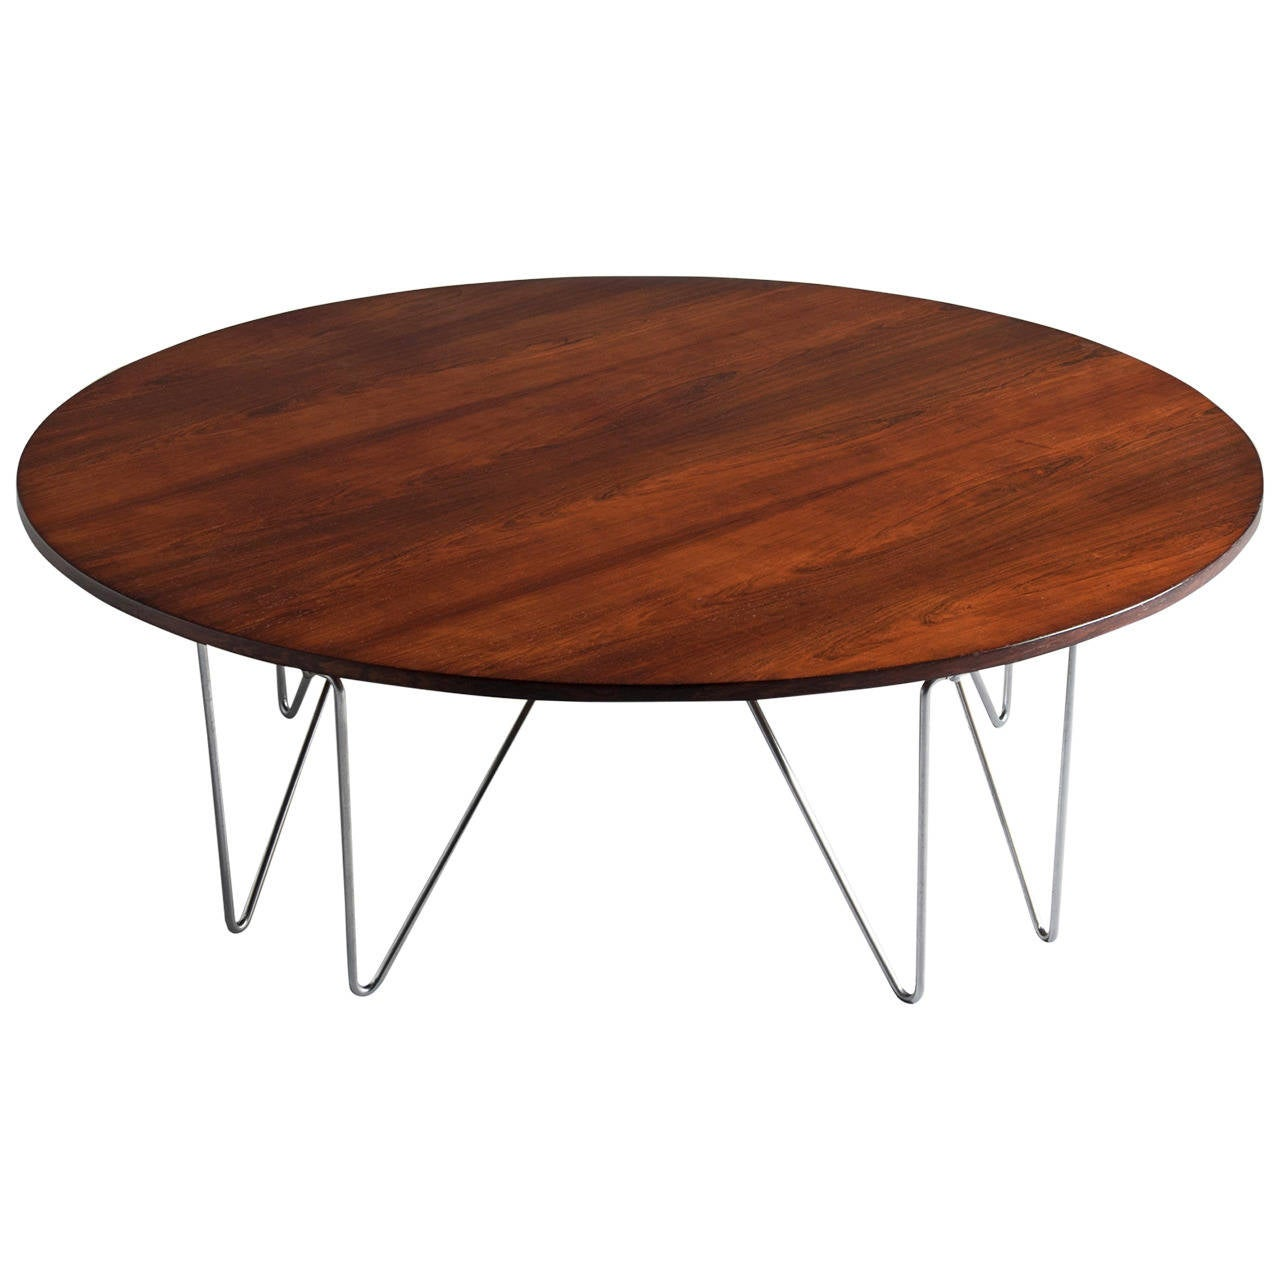 Large Round Coffee Table In Rosewood At 1stdibs: wide coffee table